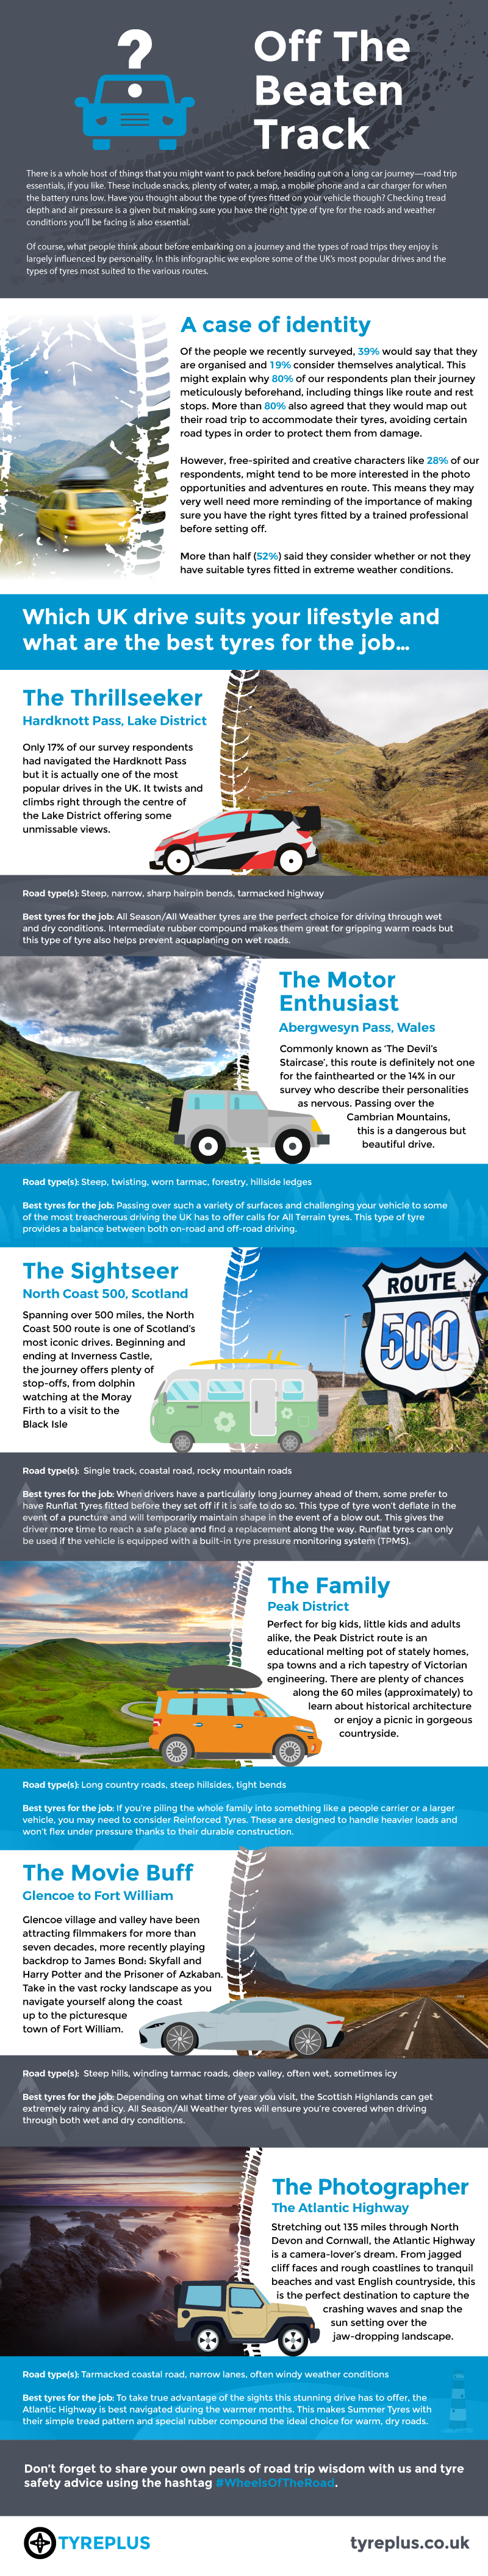 Off-The-Beaten-Track-Infographic (1) (2)